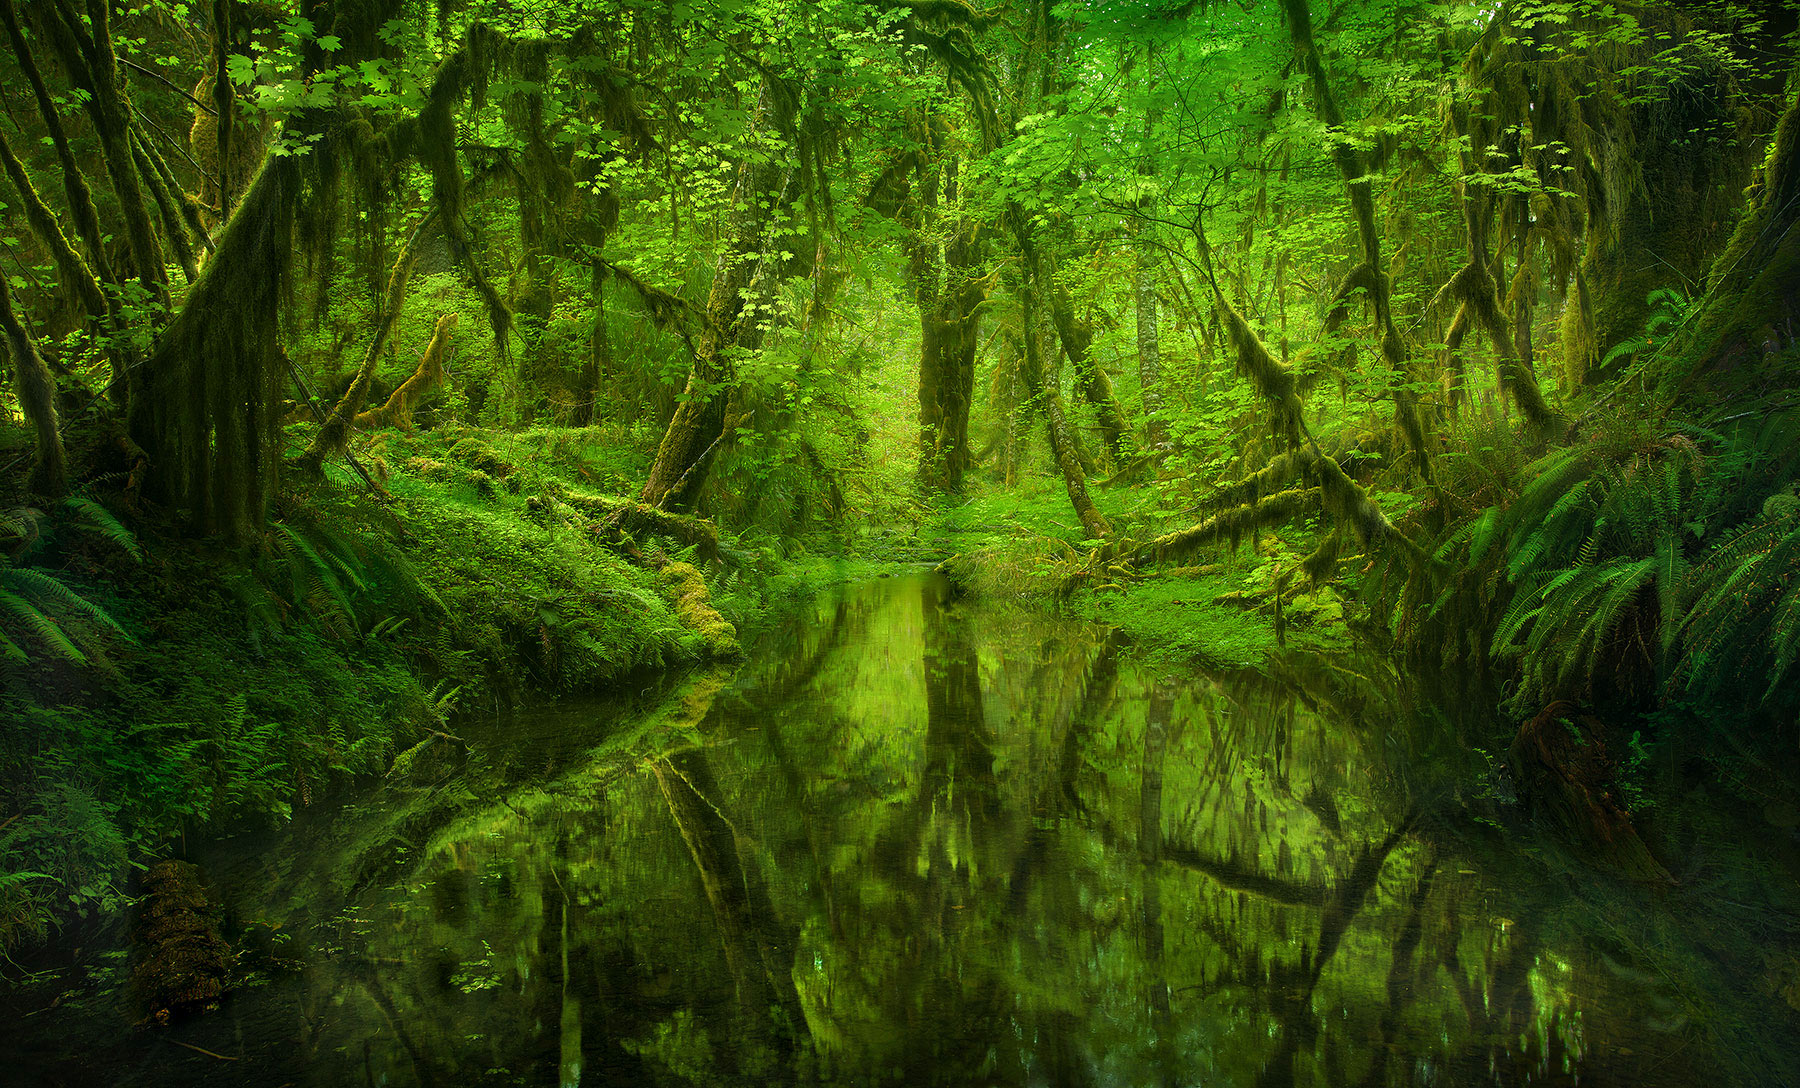 Rain Forest, Olympic, Washington, Trees, Old Growth, Woods, Reflection, Green, Spring, Washington, photo